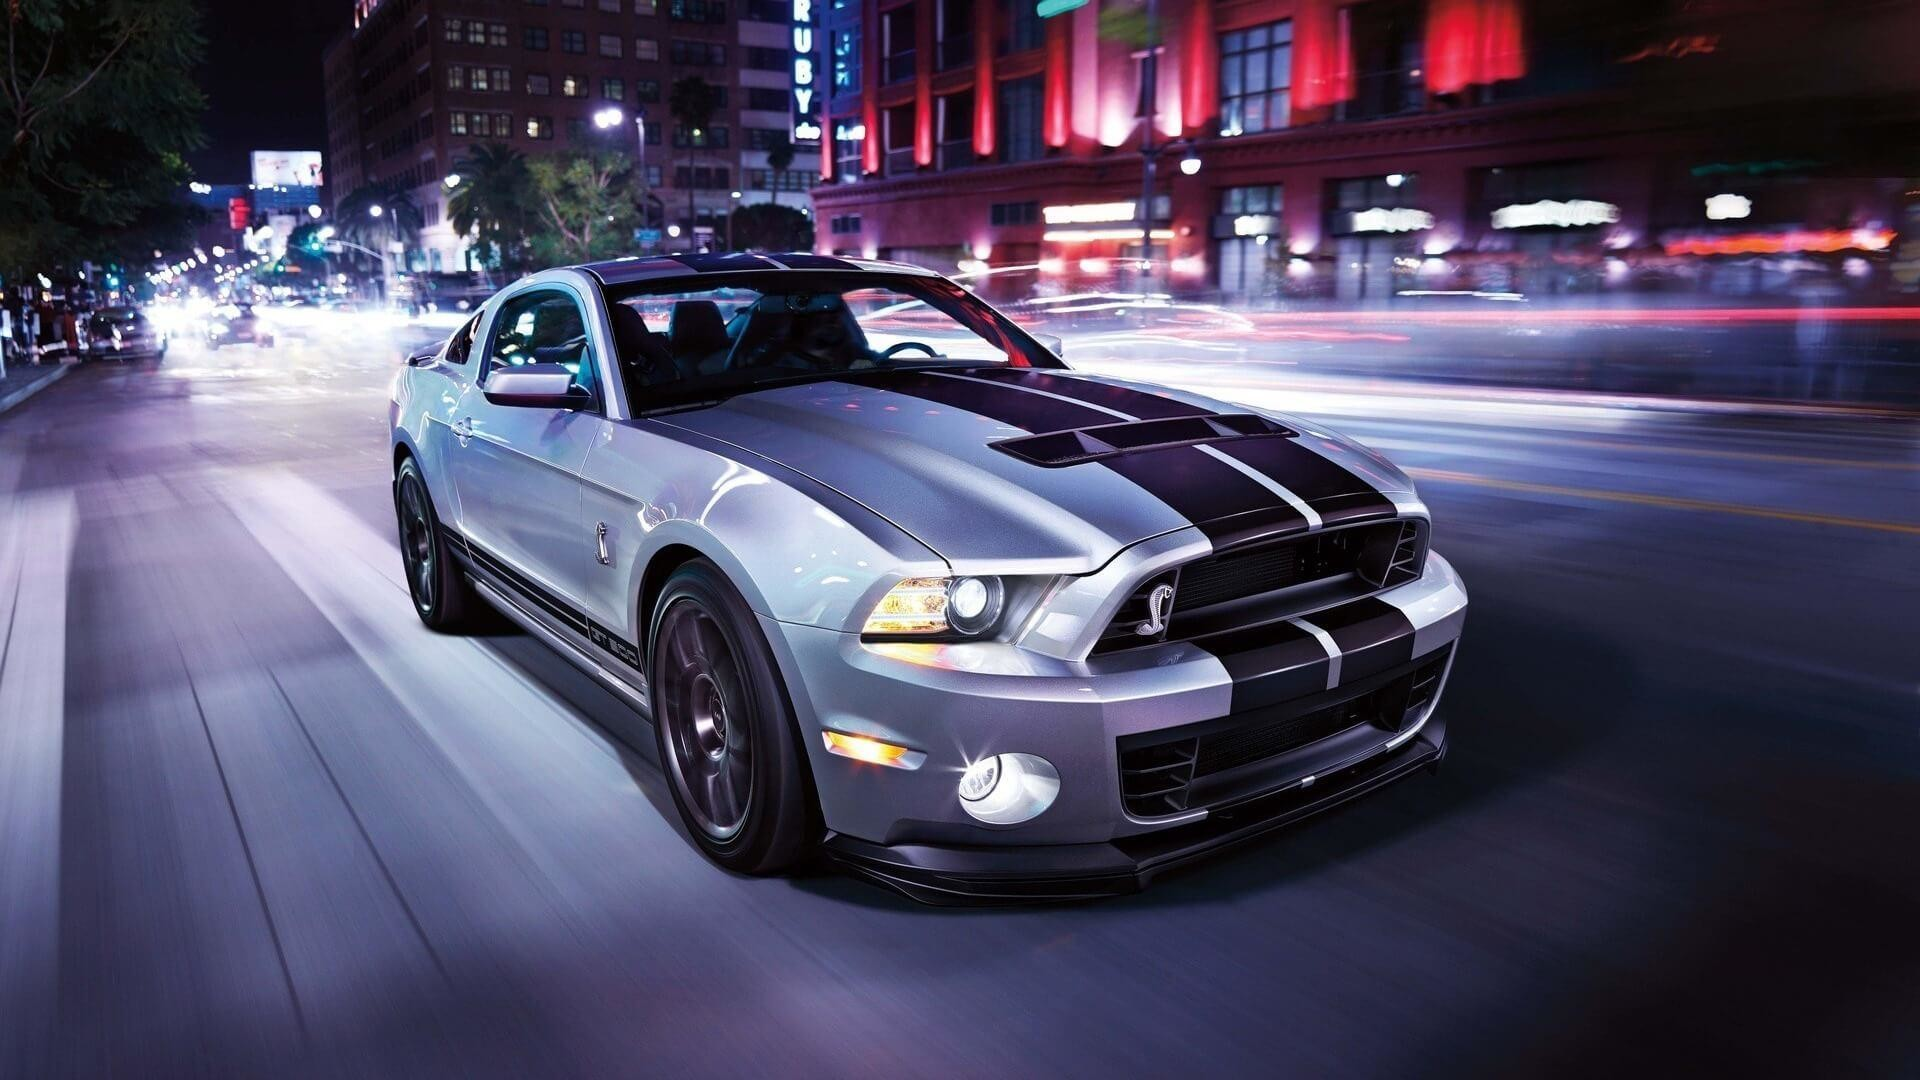 Fastest Car in the World Wallpaper 2018 (84+ images)